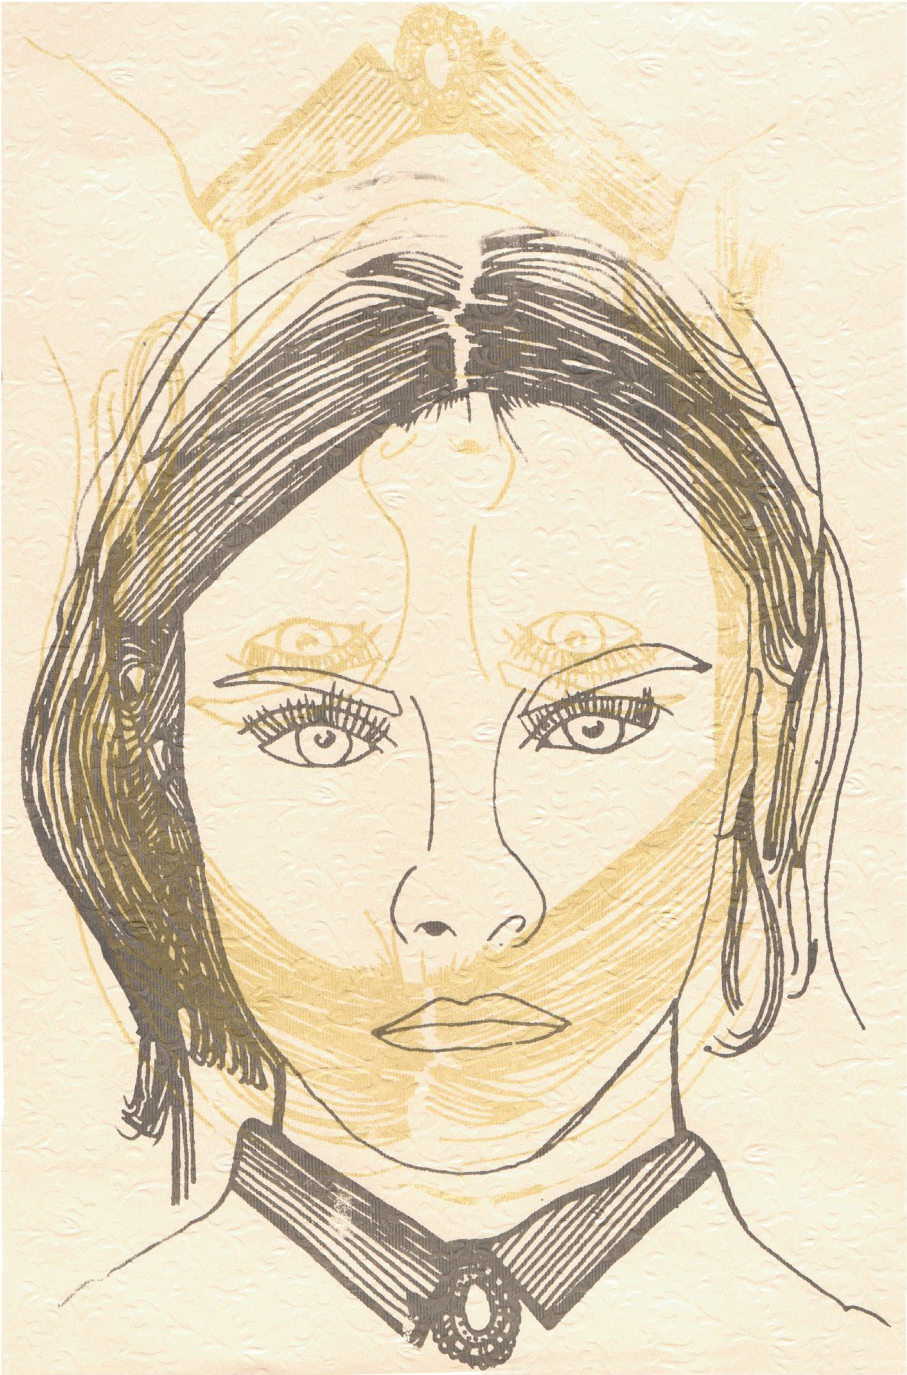 Screenprint: 'Lily was a princess she was fair-skinned and precious as a child'